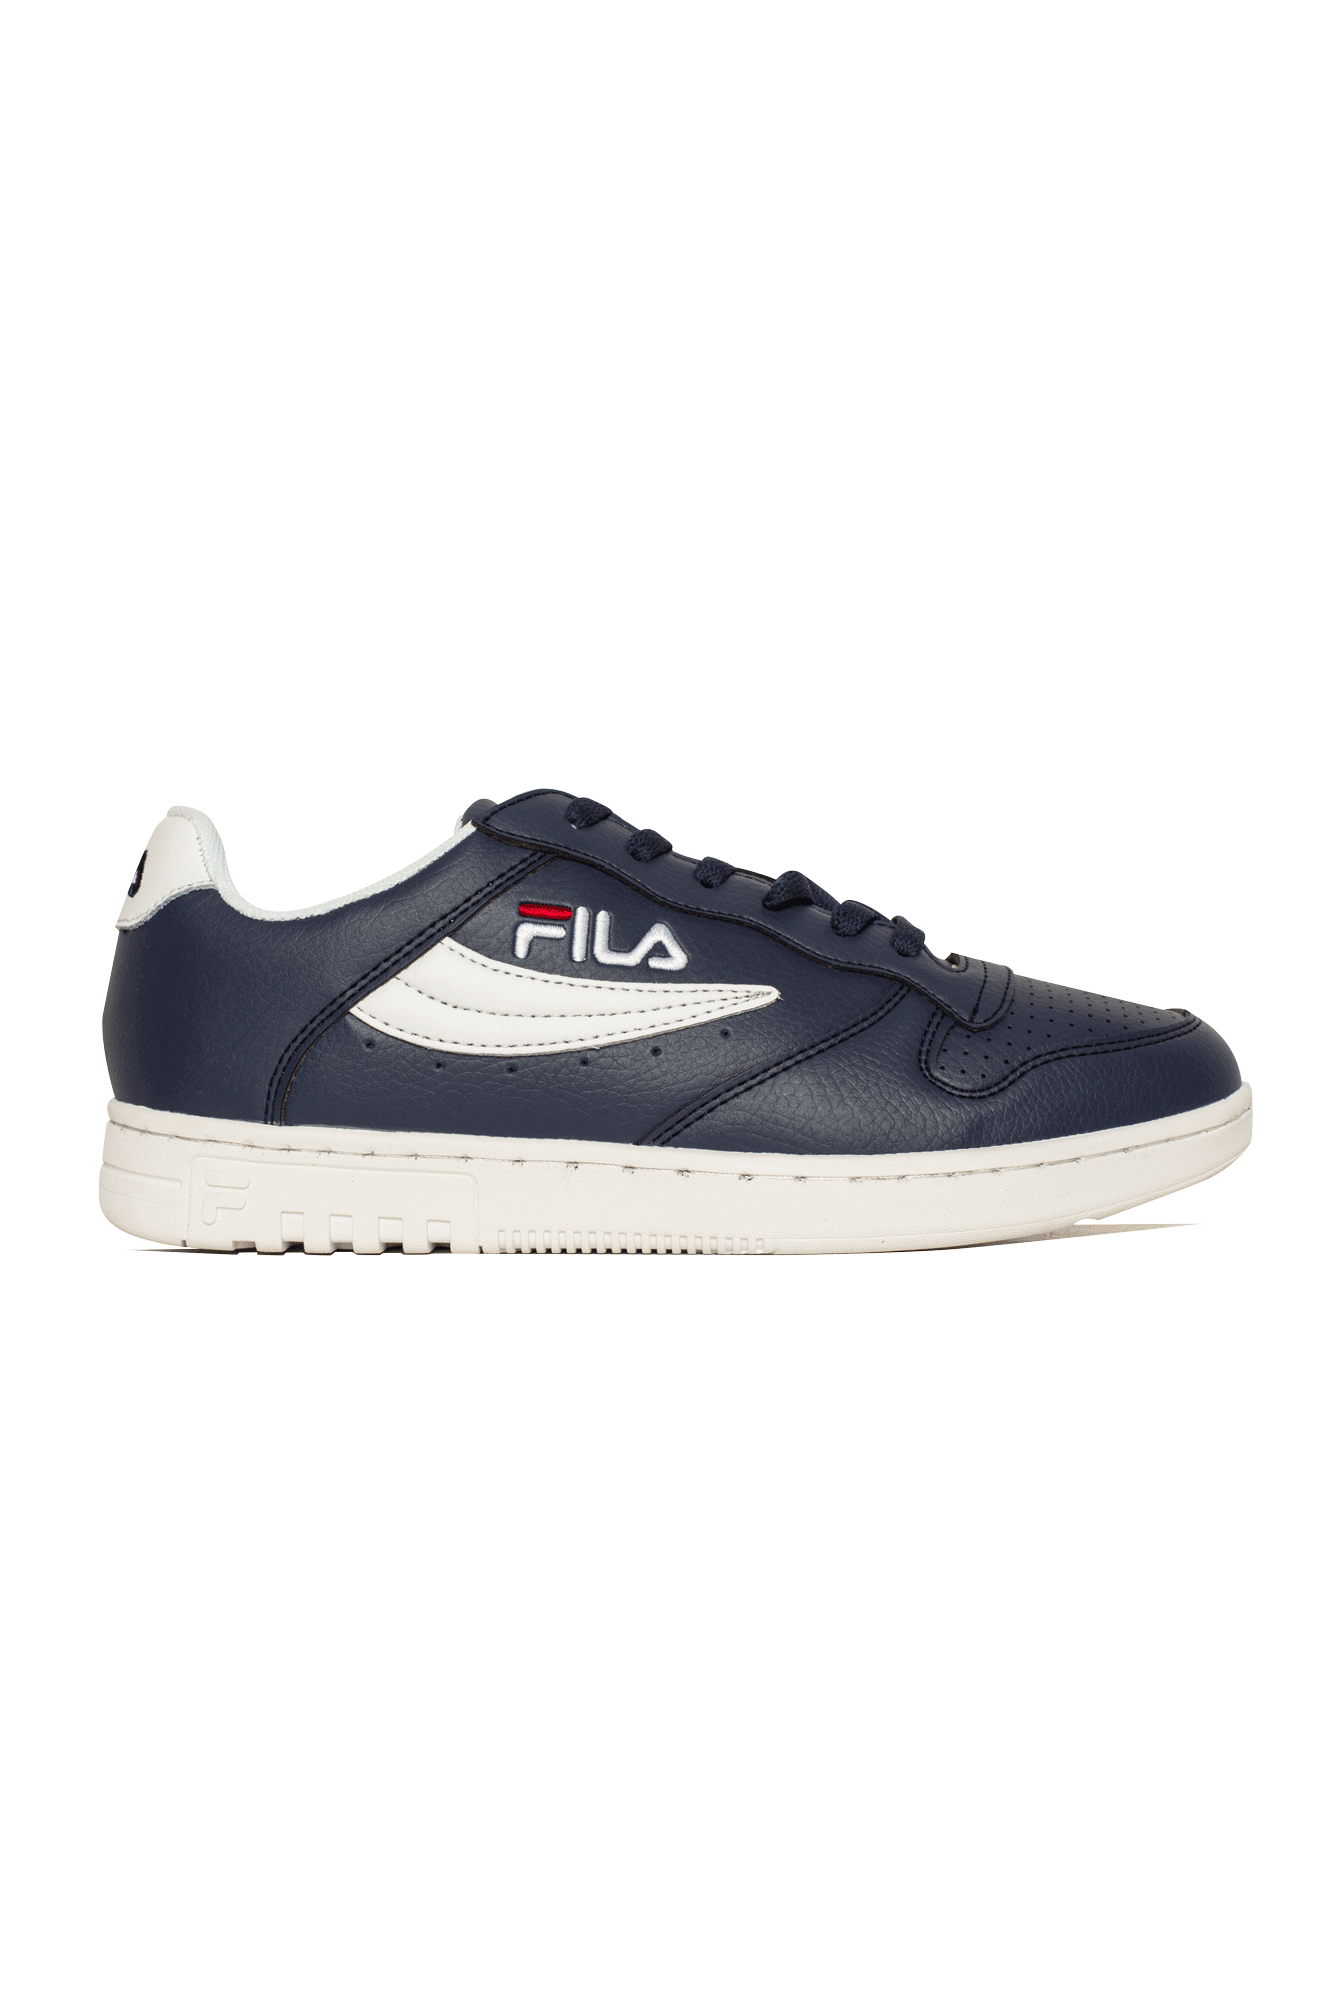 Fila Sneakers FX-100 Low Blue 1010006#000#29Y#7,5 - One Block Down